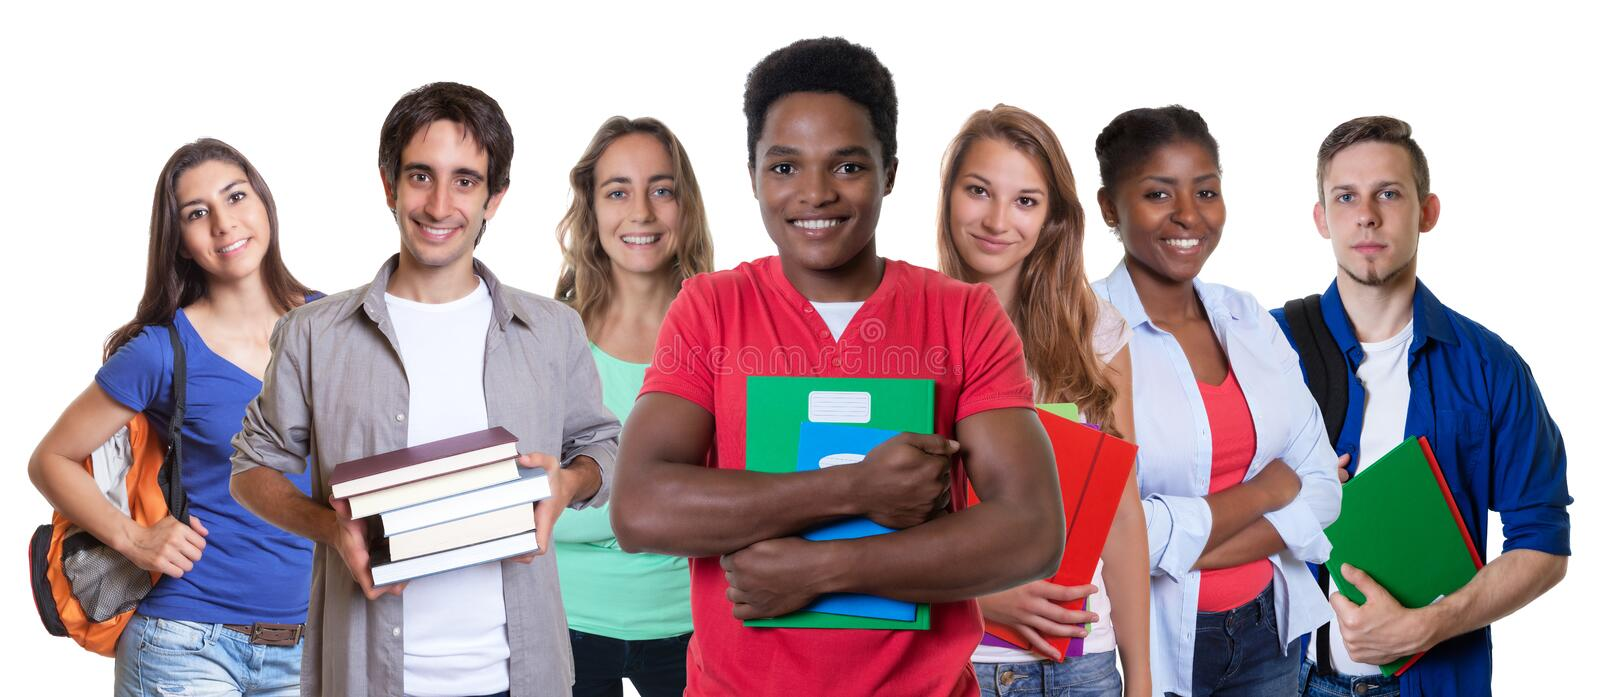 Happy african american male student with group of students stock photography